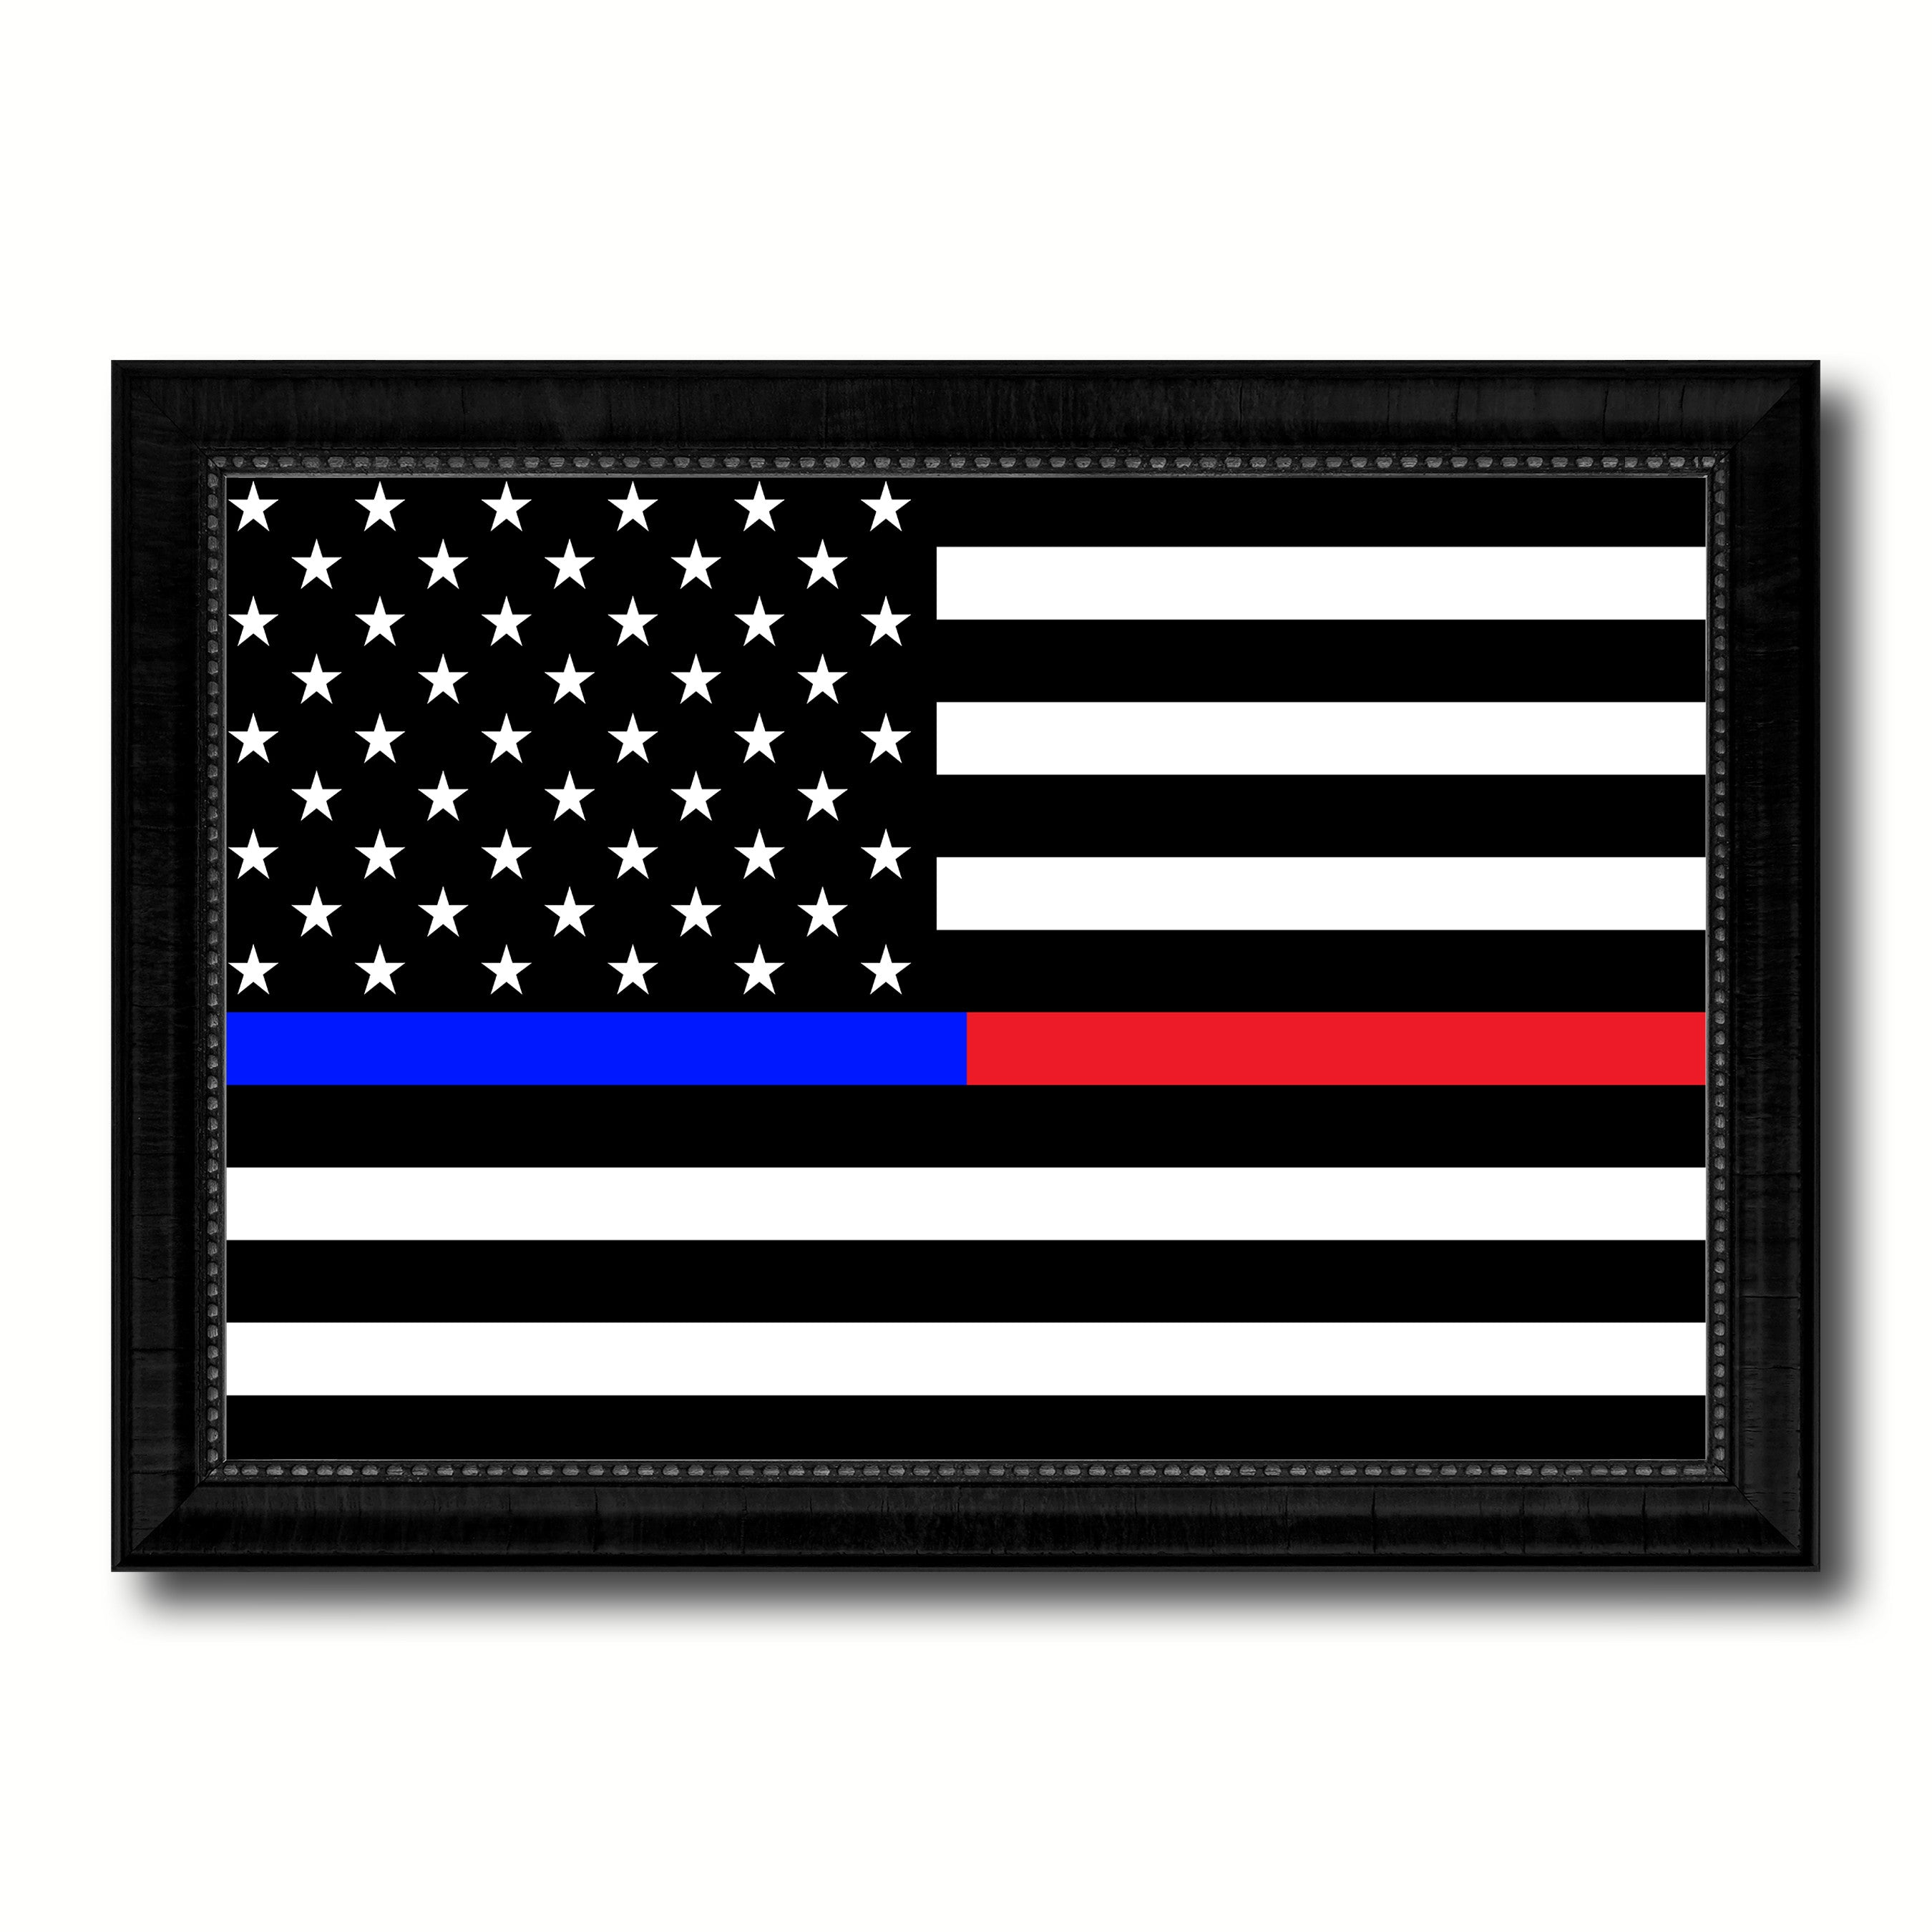 Thin Blue Line Police   Thin Red Line Firefighter Respect   Honor Law  Enforcement First Responder American USA Flag Canvas Print with Picture  Frame Home ... e3c25892841